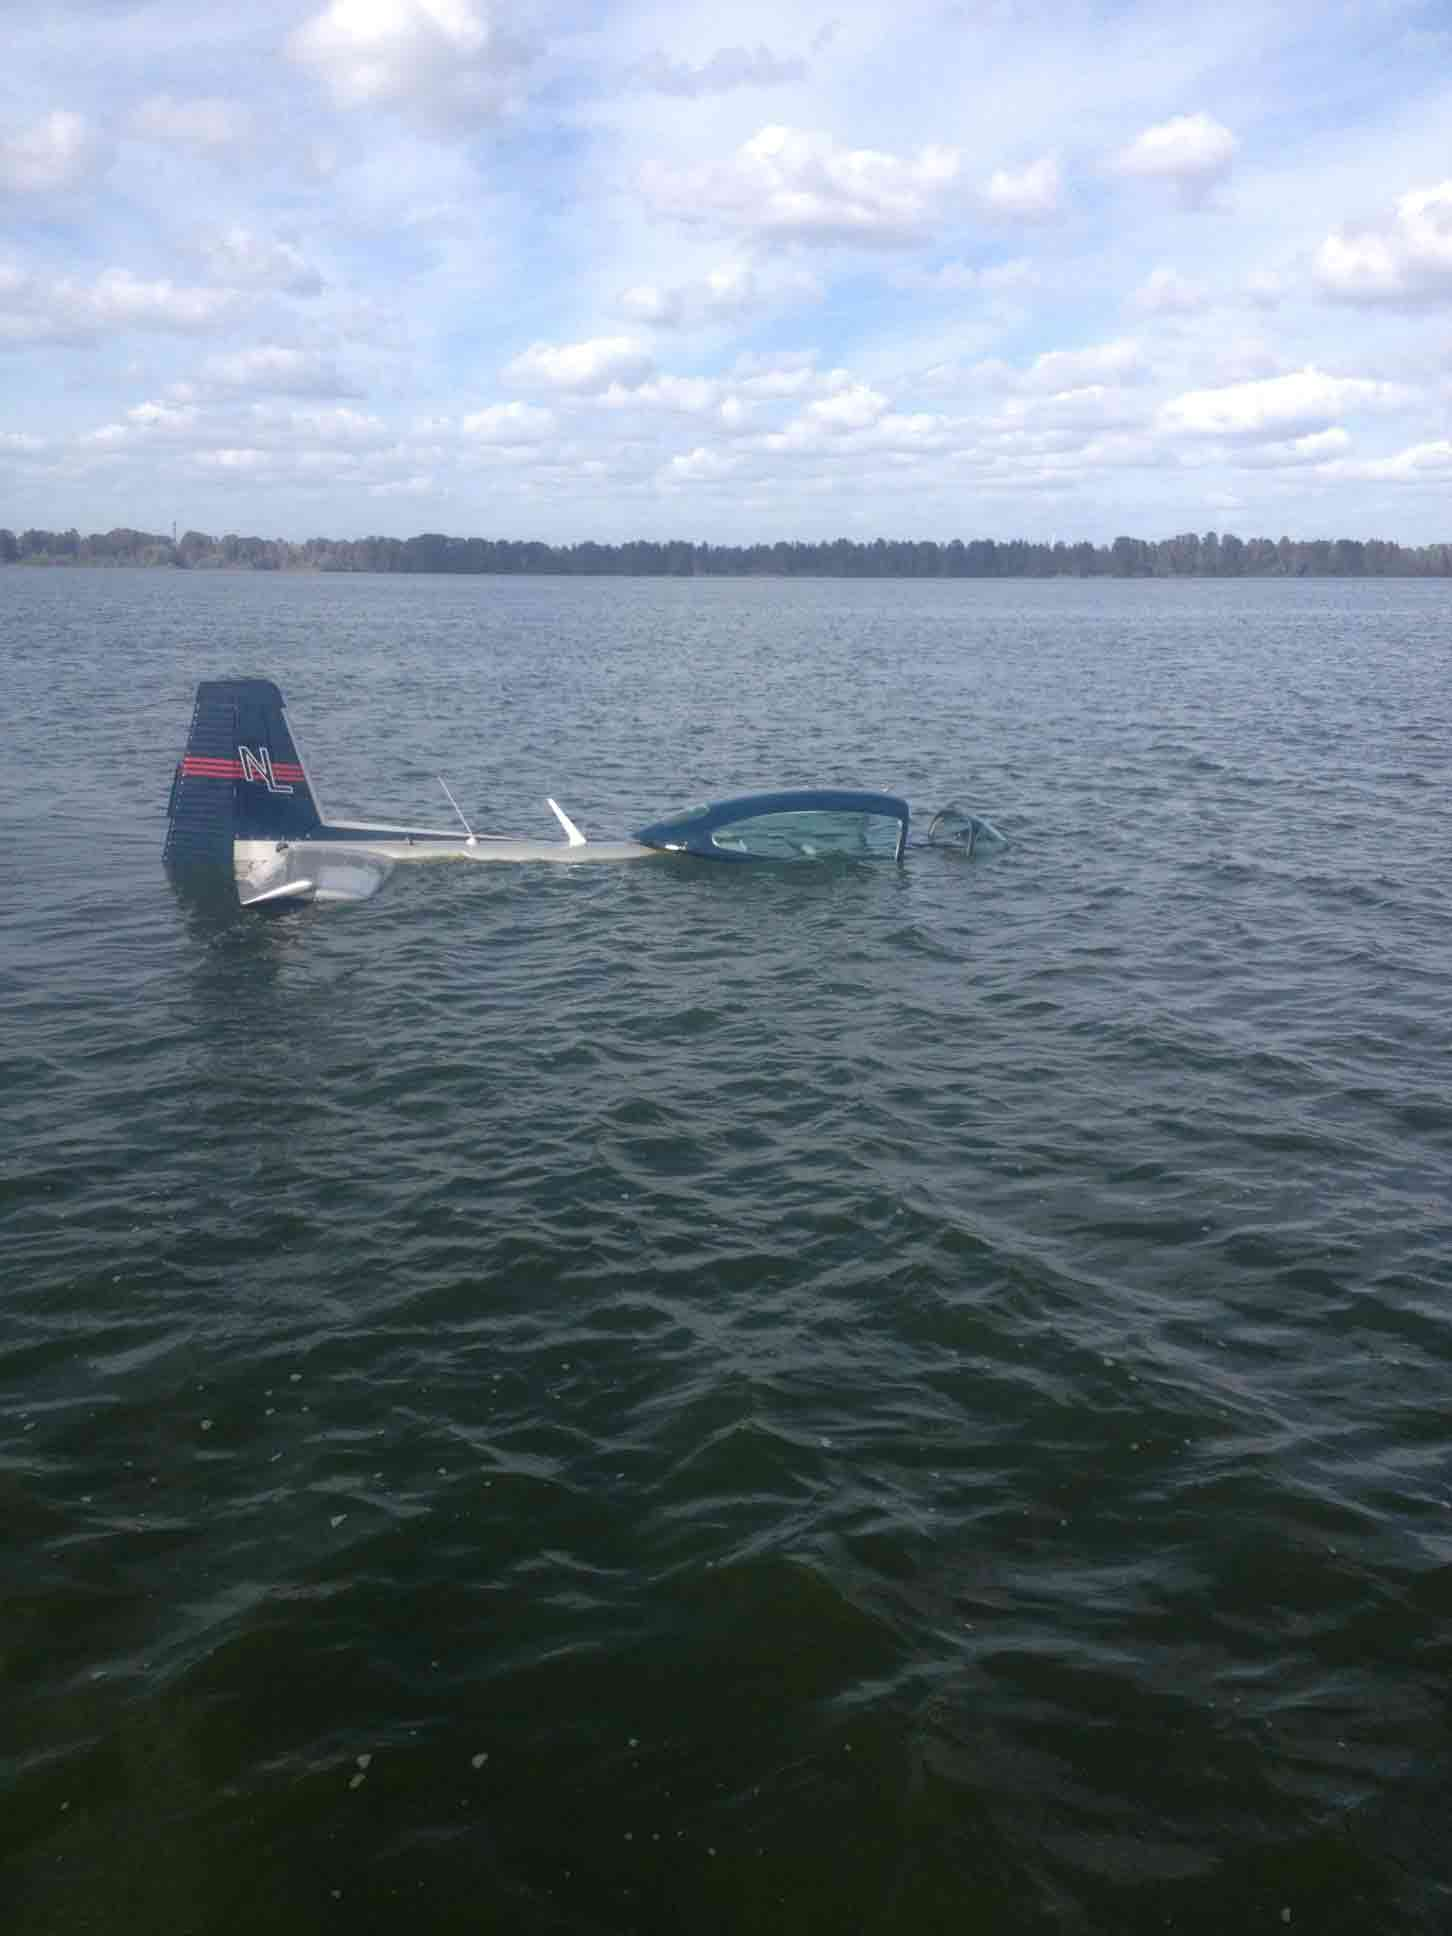 Eric McCoy's plane partially submerged in Lake Hancock